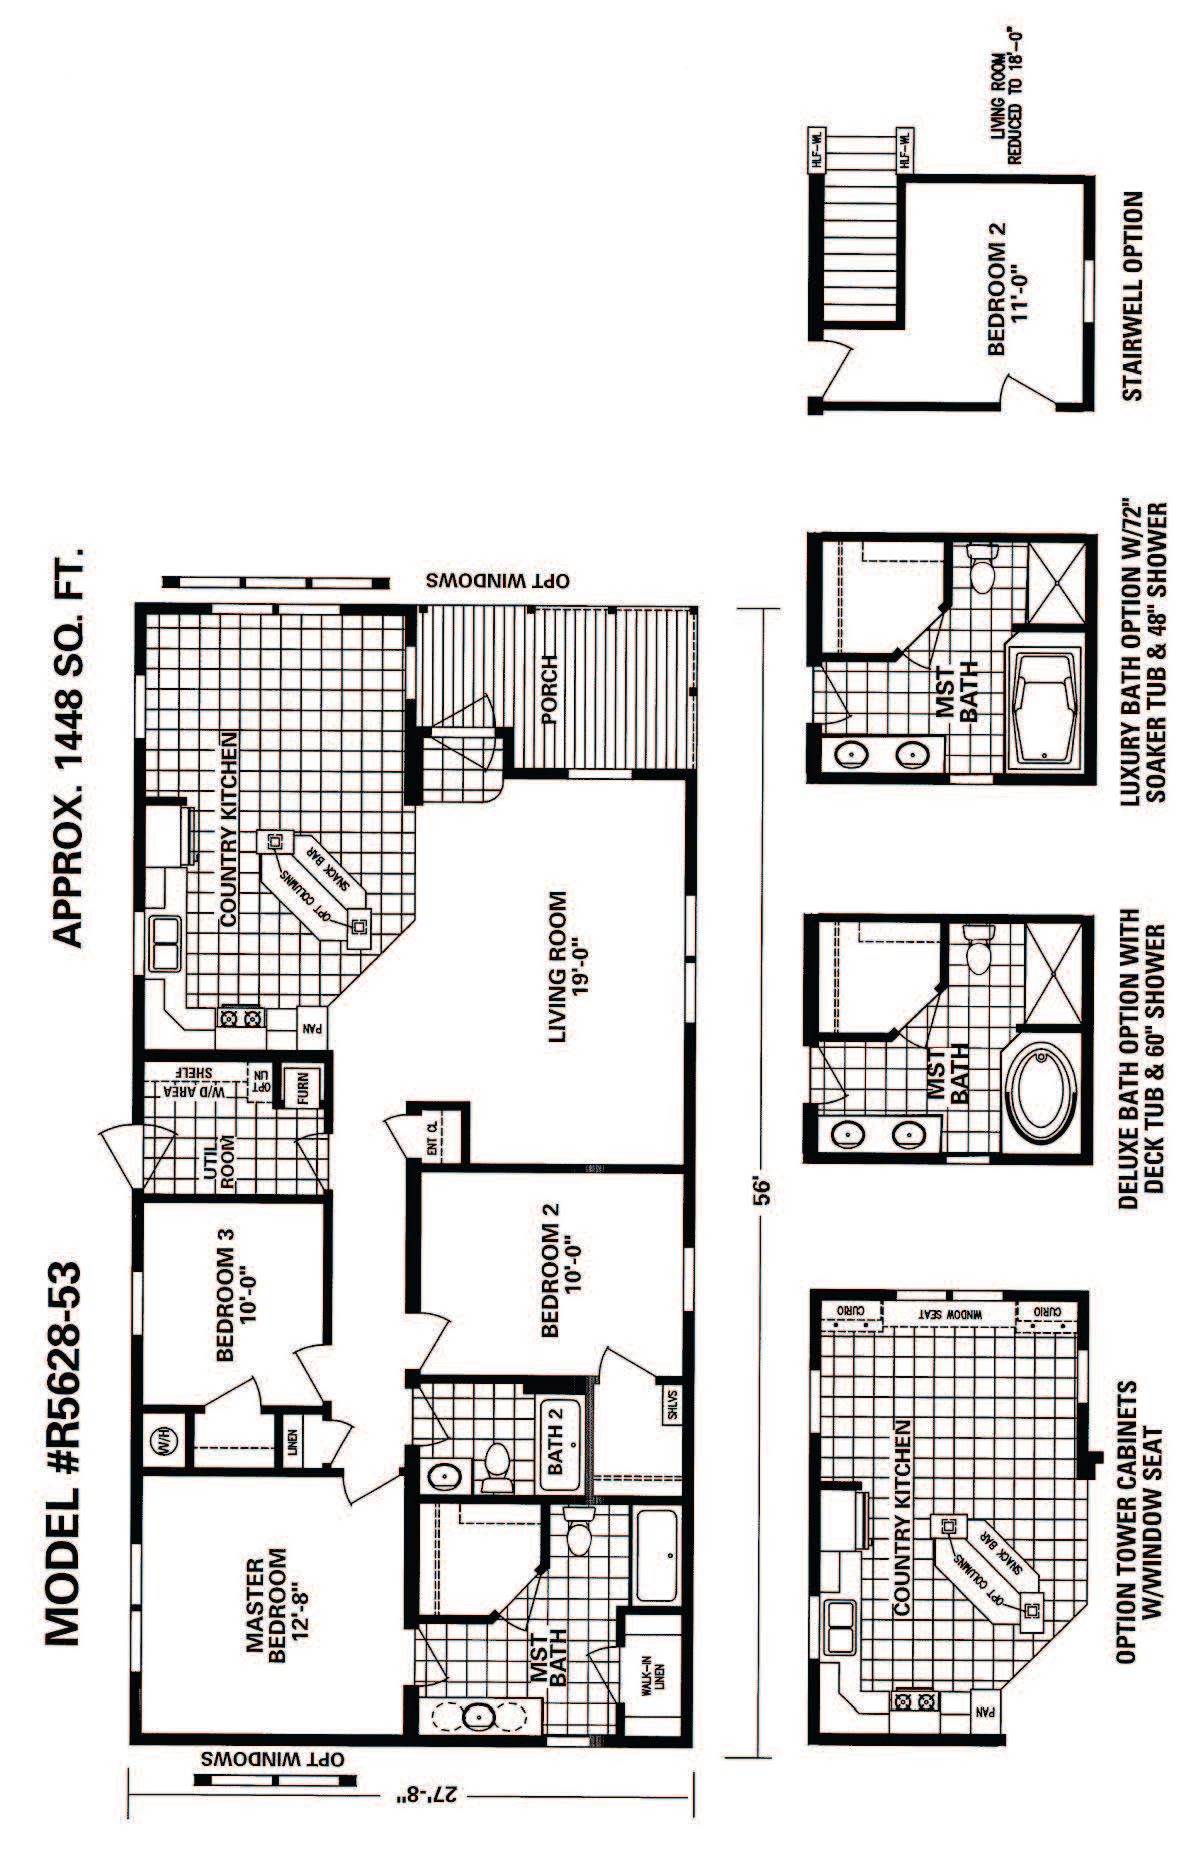 Schult Timberland 5628-53 | Excelsior Homes West, Inc.